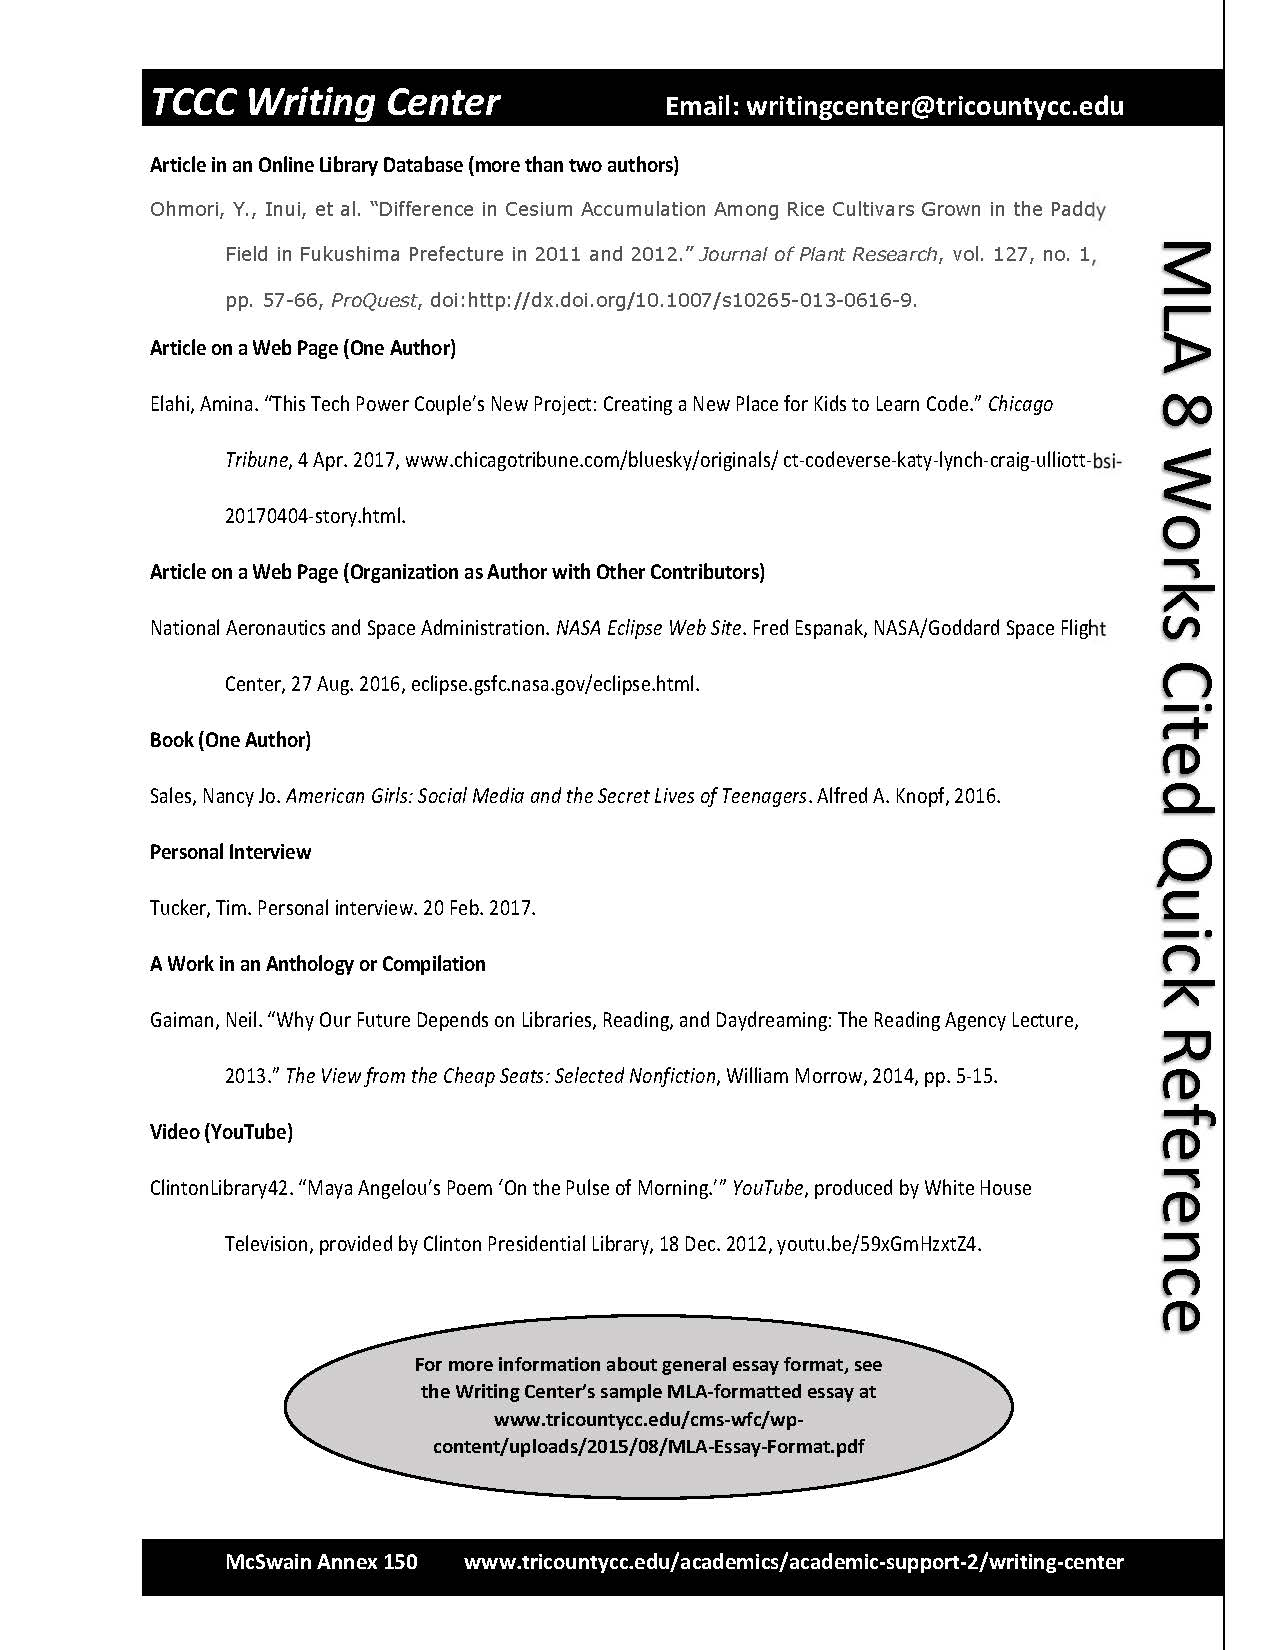 Works Cited page 2- Downloadable copy available on page